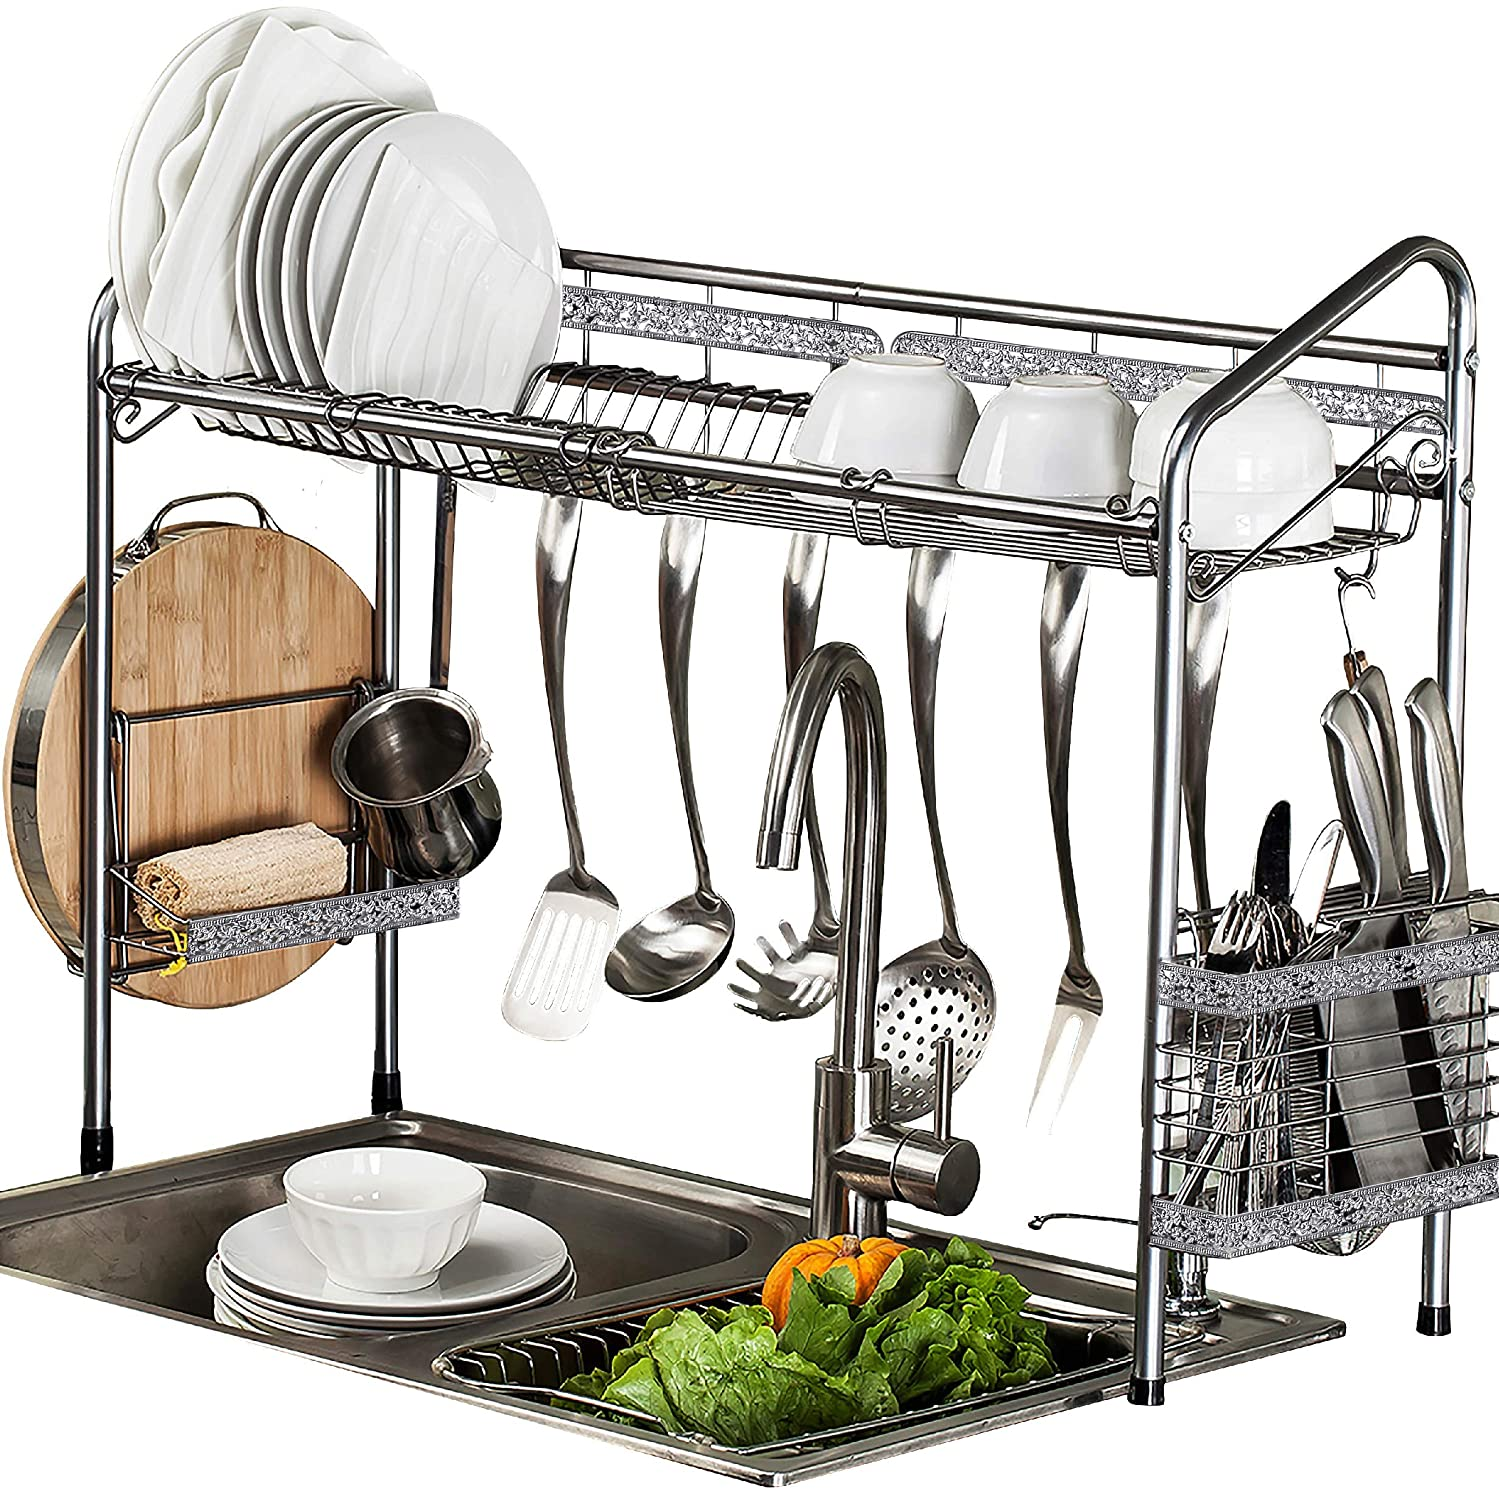 Cool Premiumracks Professional Over The Sink Dish Rack Fully Customizable Multipurpose Large Capacity Caraccident5 Cool Chair Designs And Ideas Caraccident5Info